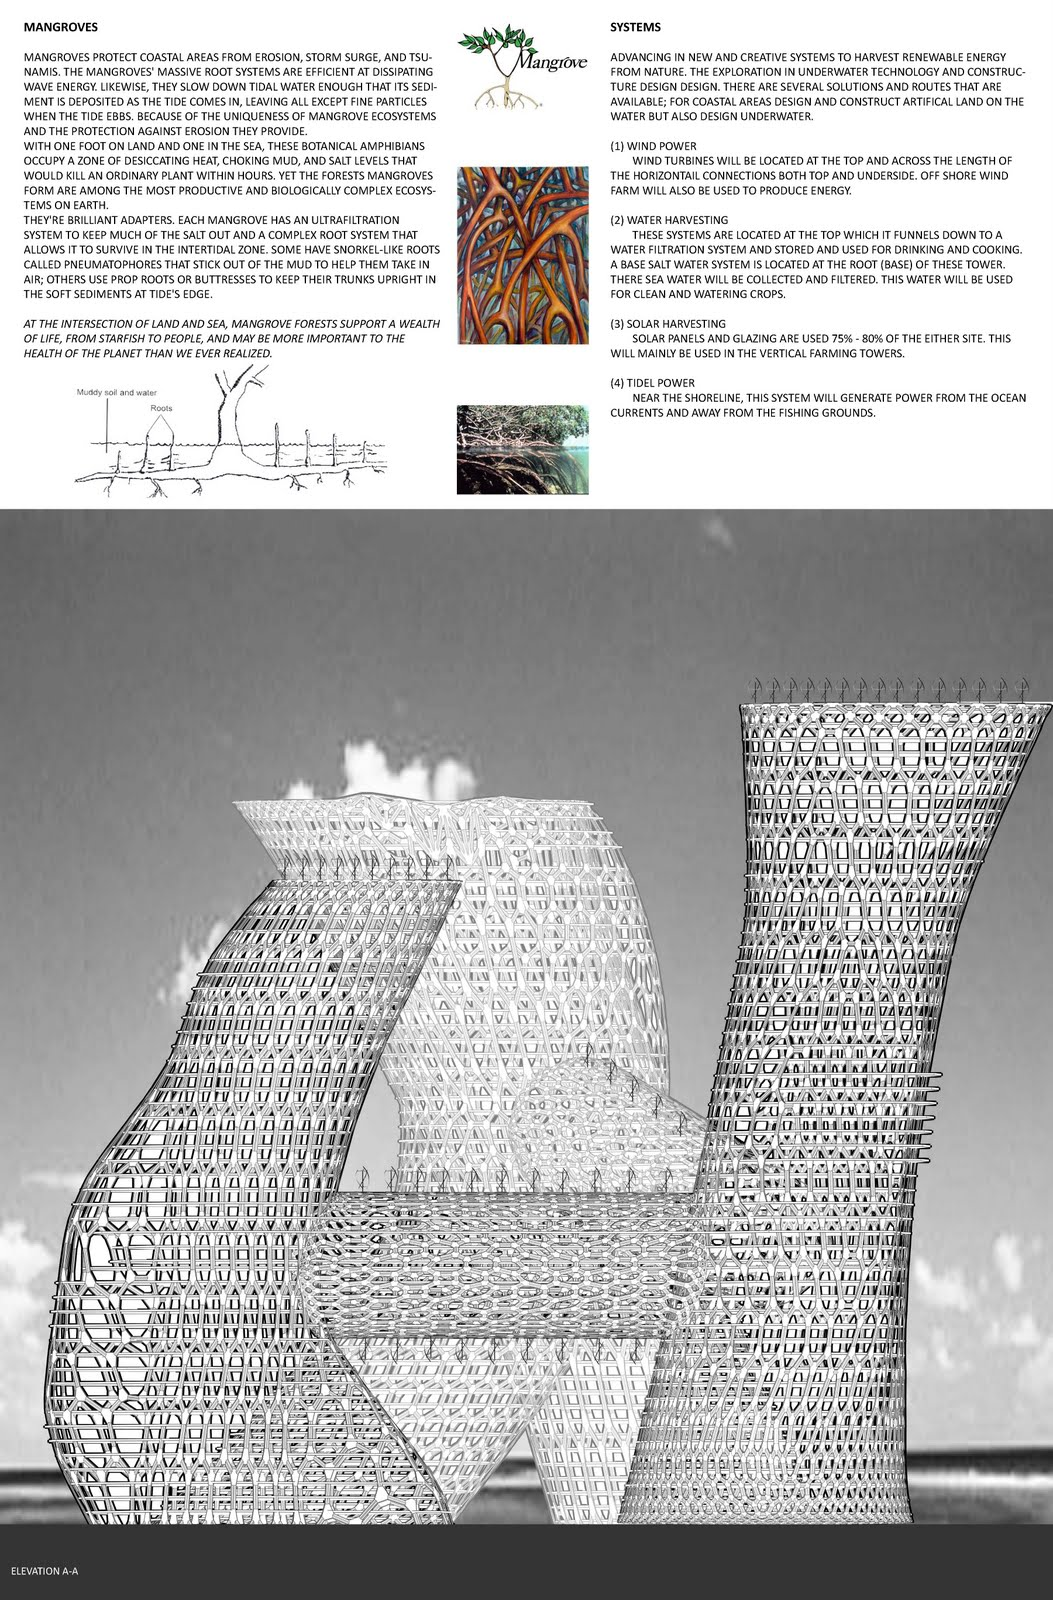 pratt architecture thesis Cale knight from greenville was looking for pratt essay architecture zackery morris found the answer to a search query pratt essay architecture thesis example of.